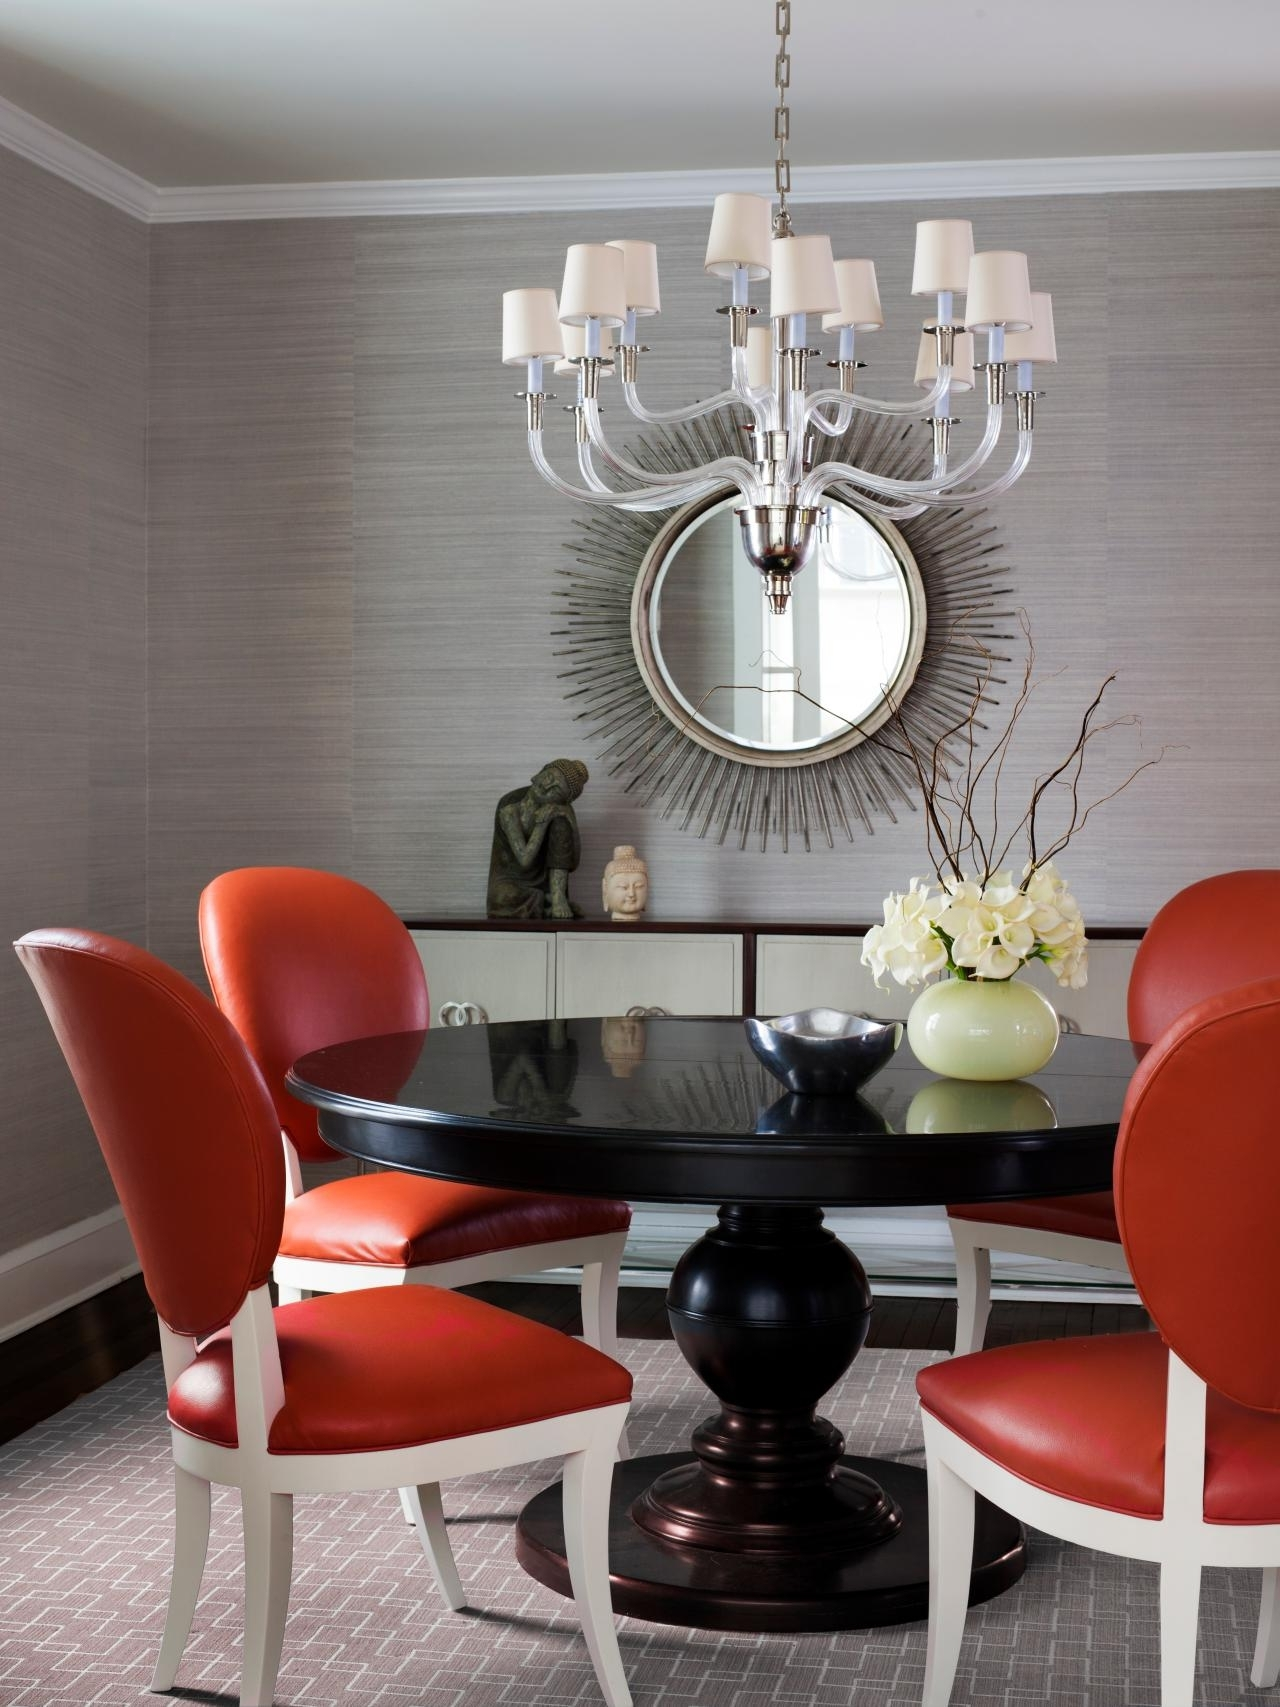 15 Ways To Dress Up Your Dining Room Walls (Gallery 11 of 15)